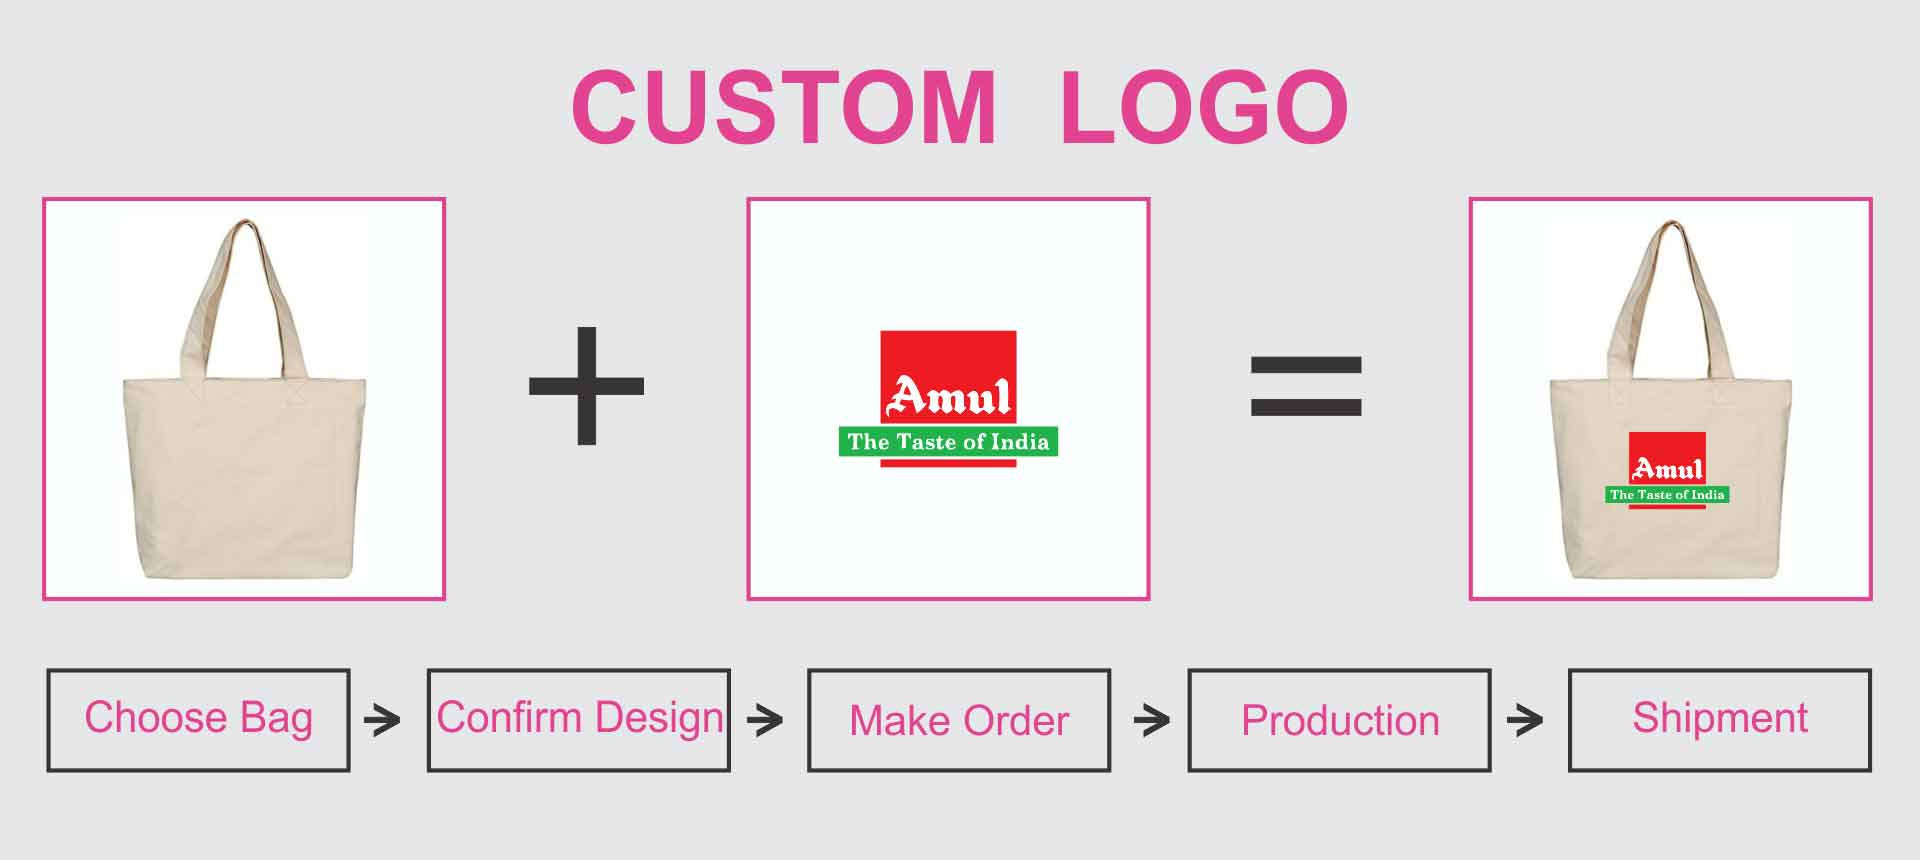 Aman Enterprises